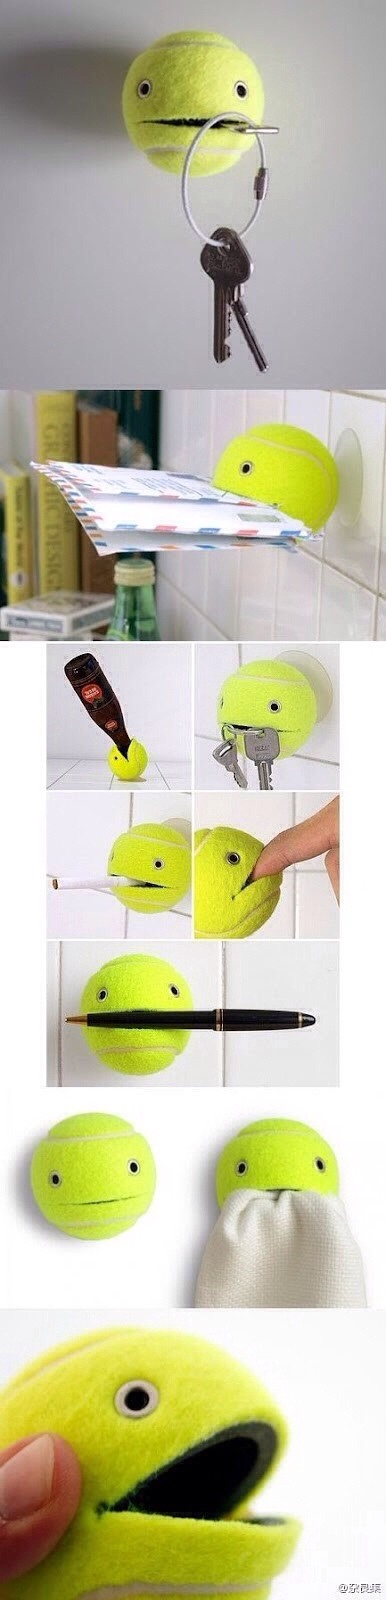 Turn Tennis Balls Into Key Holder, Paper Holder, Ect!